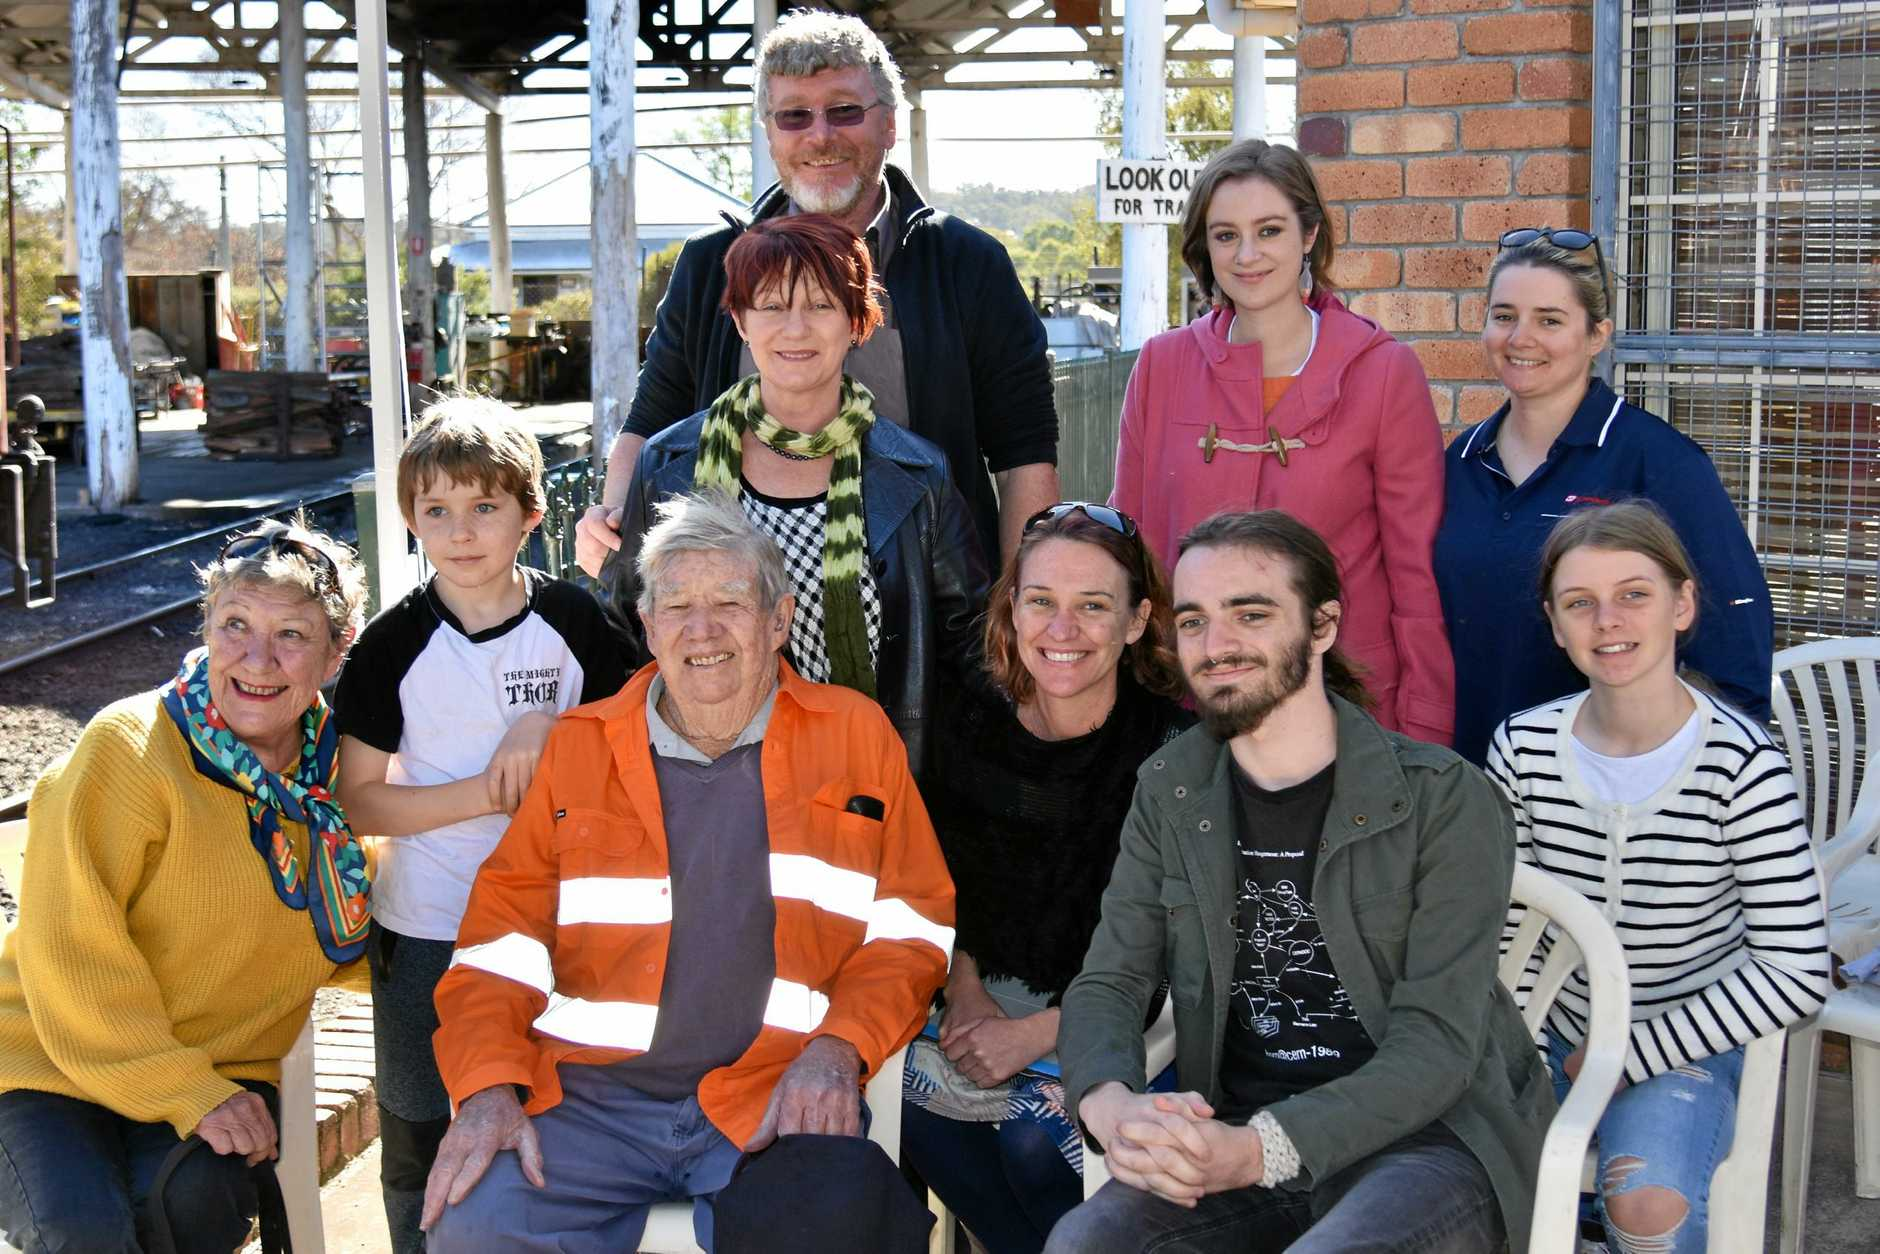 COMMUNITY LEGEND HONOURED: Bob Keogh with his family honoured for his tremendous worth ethics for the Southern Downs Steam Railway